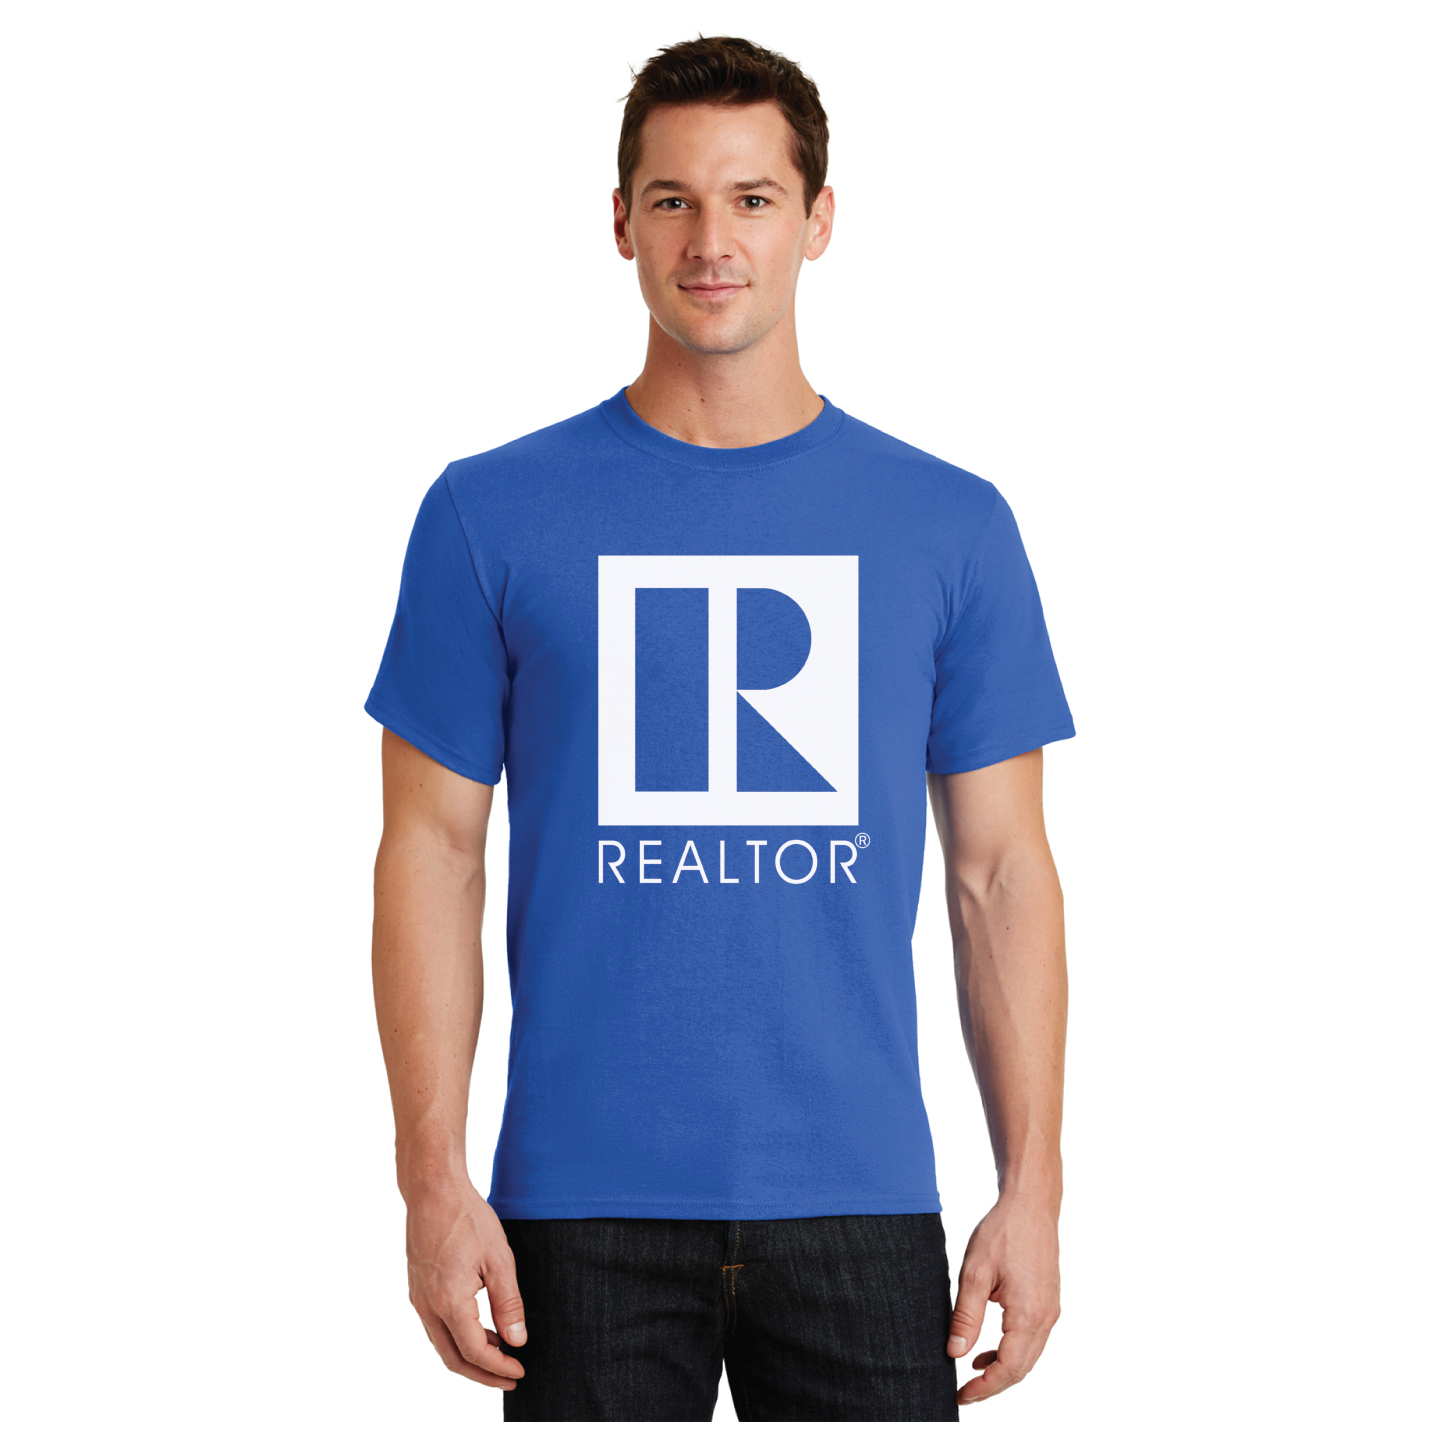 100% Heavyweight Cotton Tee Shirt - RCG1131-B